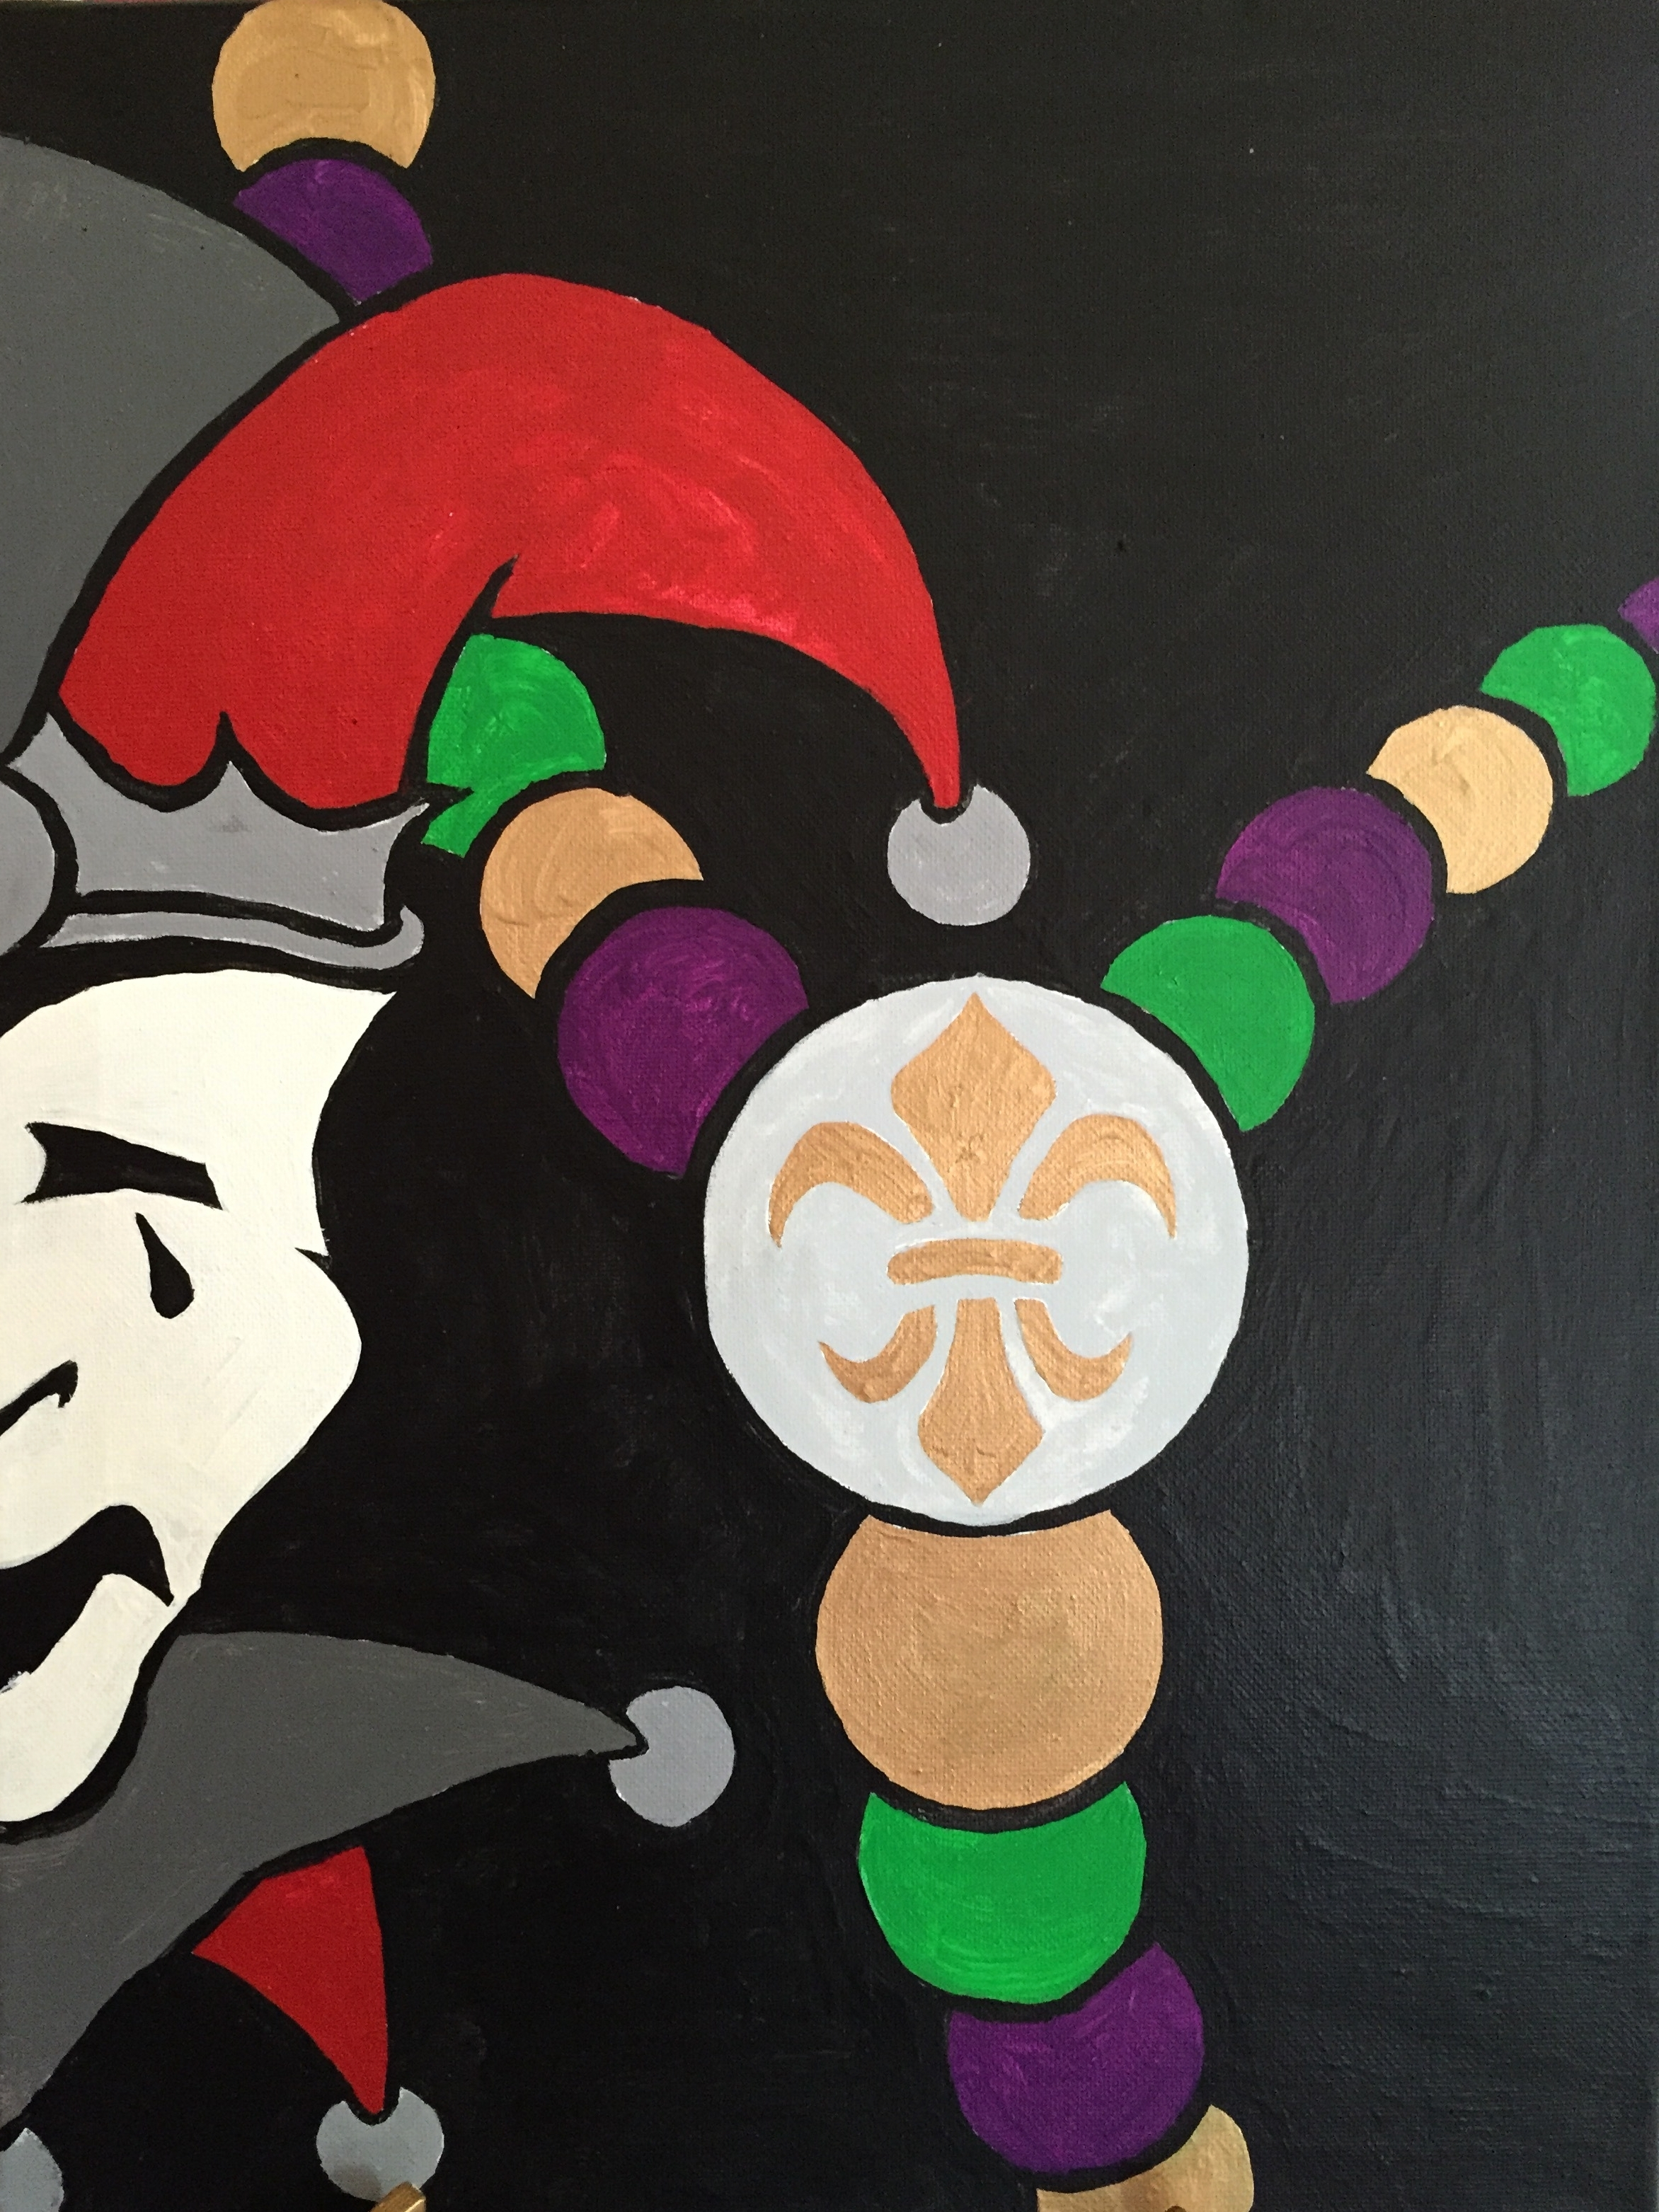 Mardi Gras Beads and Mask. Acrylic on Canvas by local artist William Angermann. Copyright William Angermann, used with permission